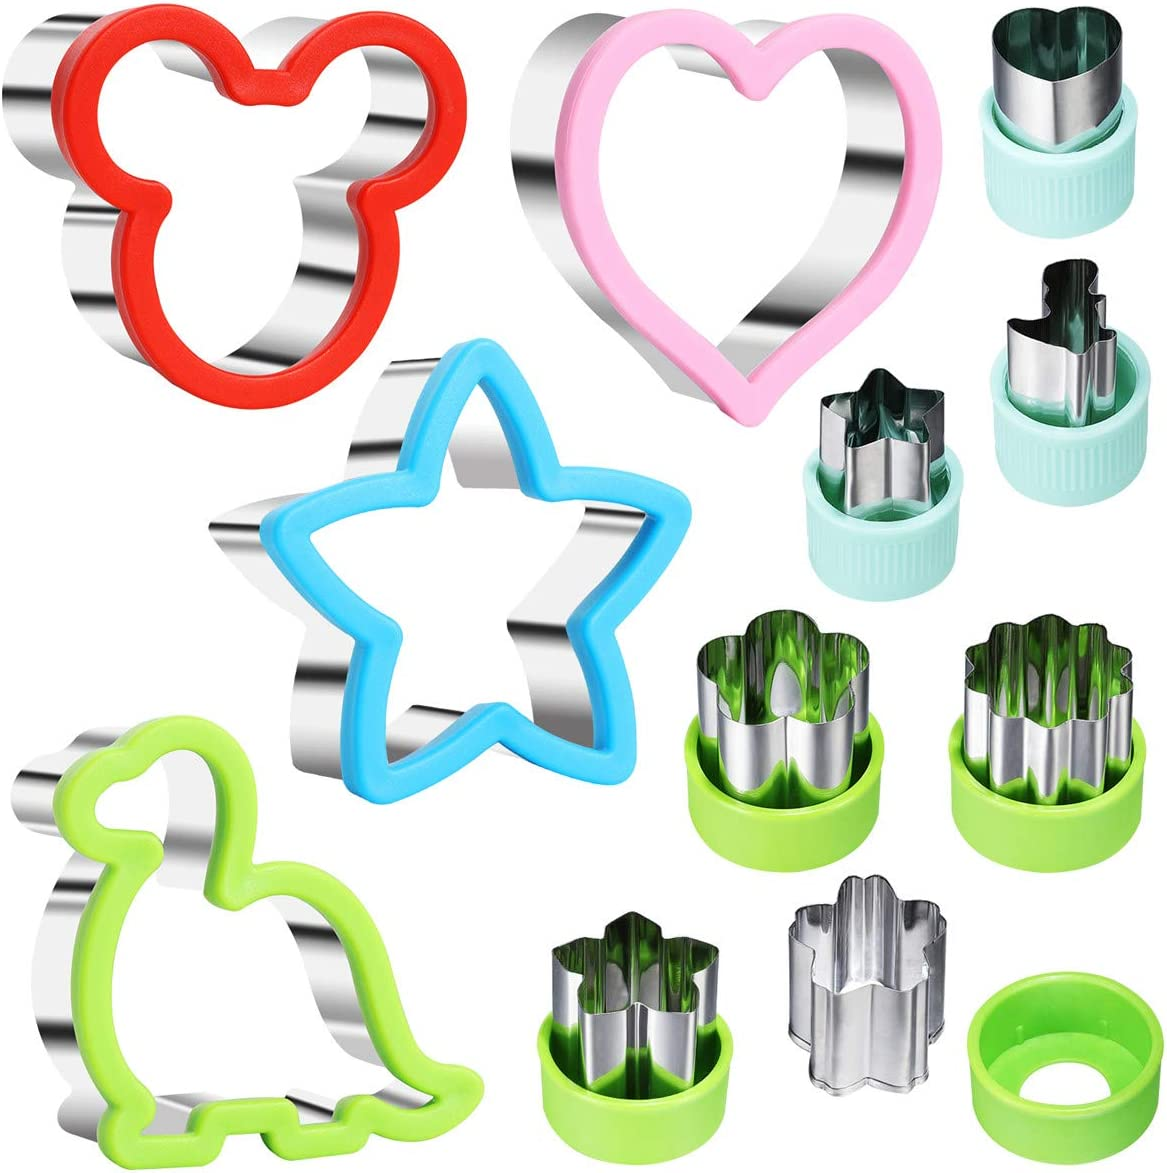 Sandwich Cutter Set, Including 4 Sandwich Cutters Shaped Like Mickey, Dinosaur, Star and Heart and 7 Vegetable Cutters, Suitable For Children